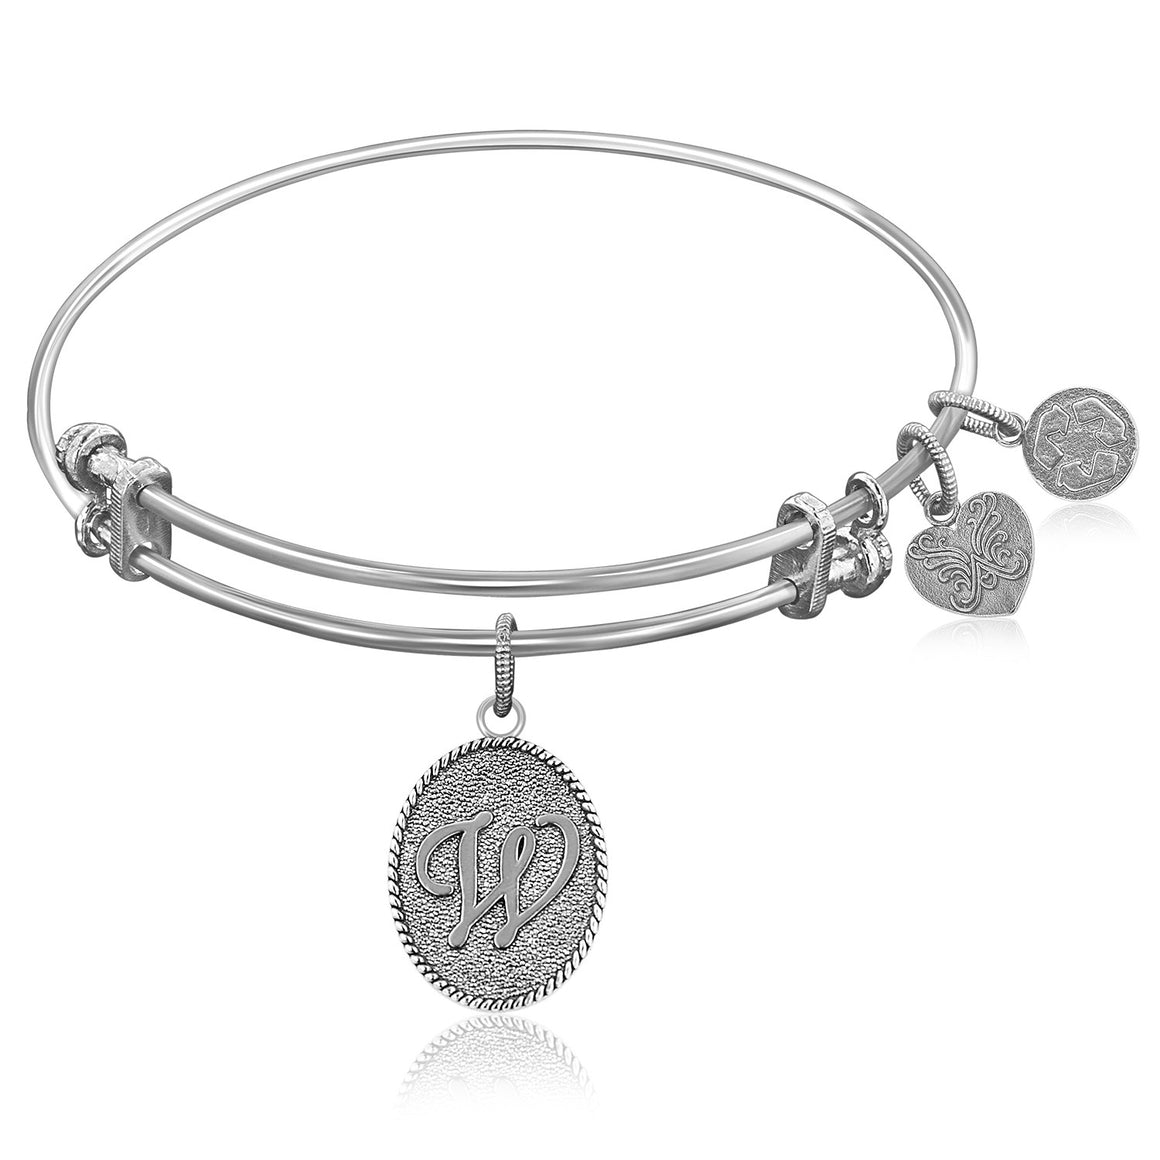 Expandable Bangle in White Tone Brass with Initial W Symbol